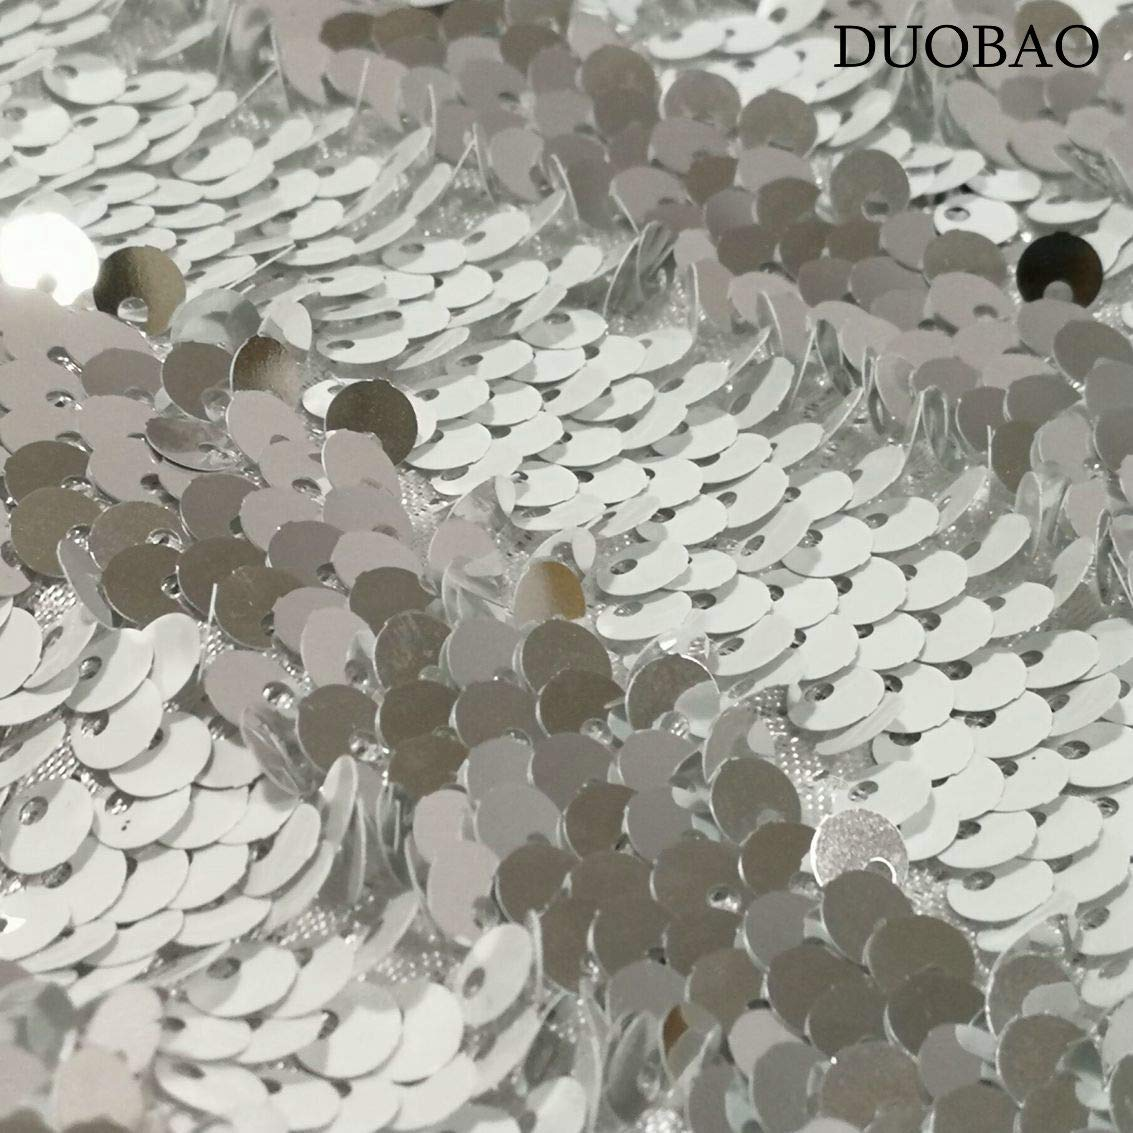 DUOBAO Sequin Backdrop 20FTx10FT White to Silver Wedding Pics Backdrop Mermaid Reversible Sequin Photo Backdrop Baby Shower Curtains by DUOBAO (Image #6)